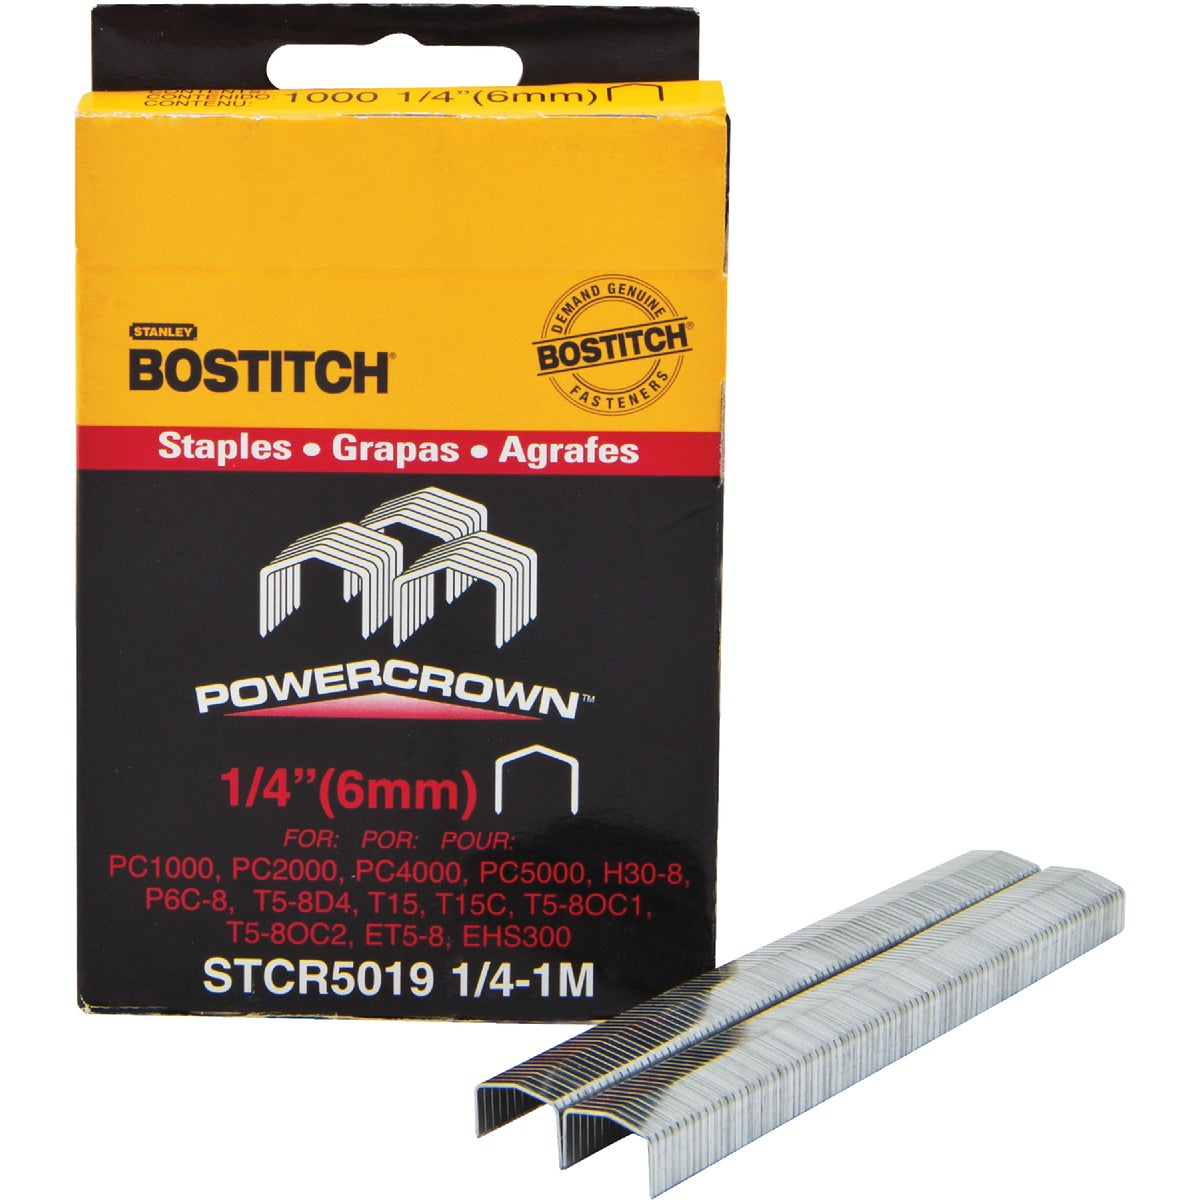 "1/4"" STAPLE - STCR50191/4-1M by Stanley Bostitch"